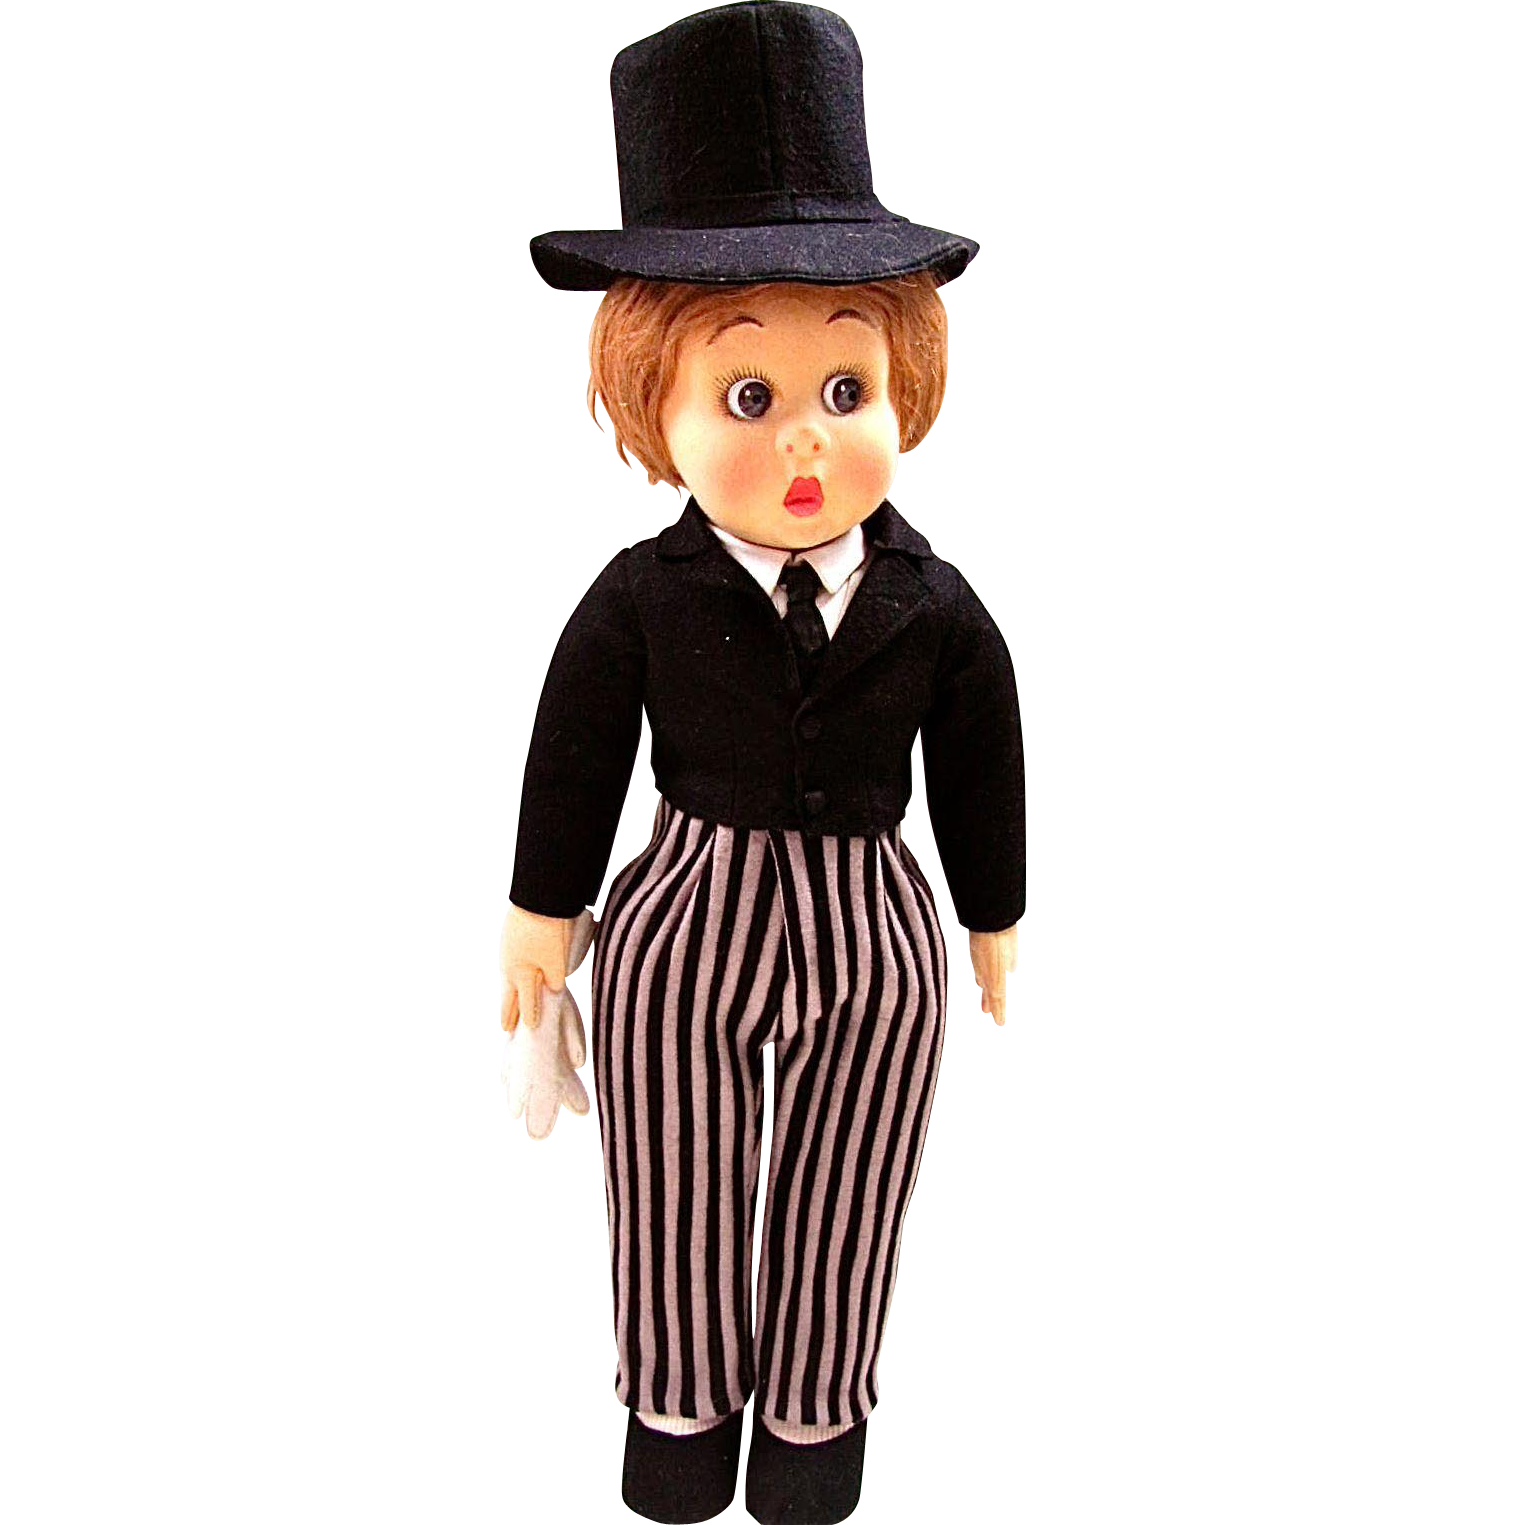 Lenci 19 Inch Doll, Boy in Formal Attire with Top Hat, Italian Felt Character Doll, Vintage 1931, All Original